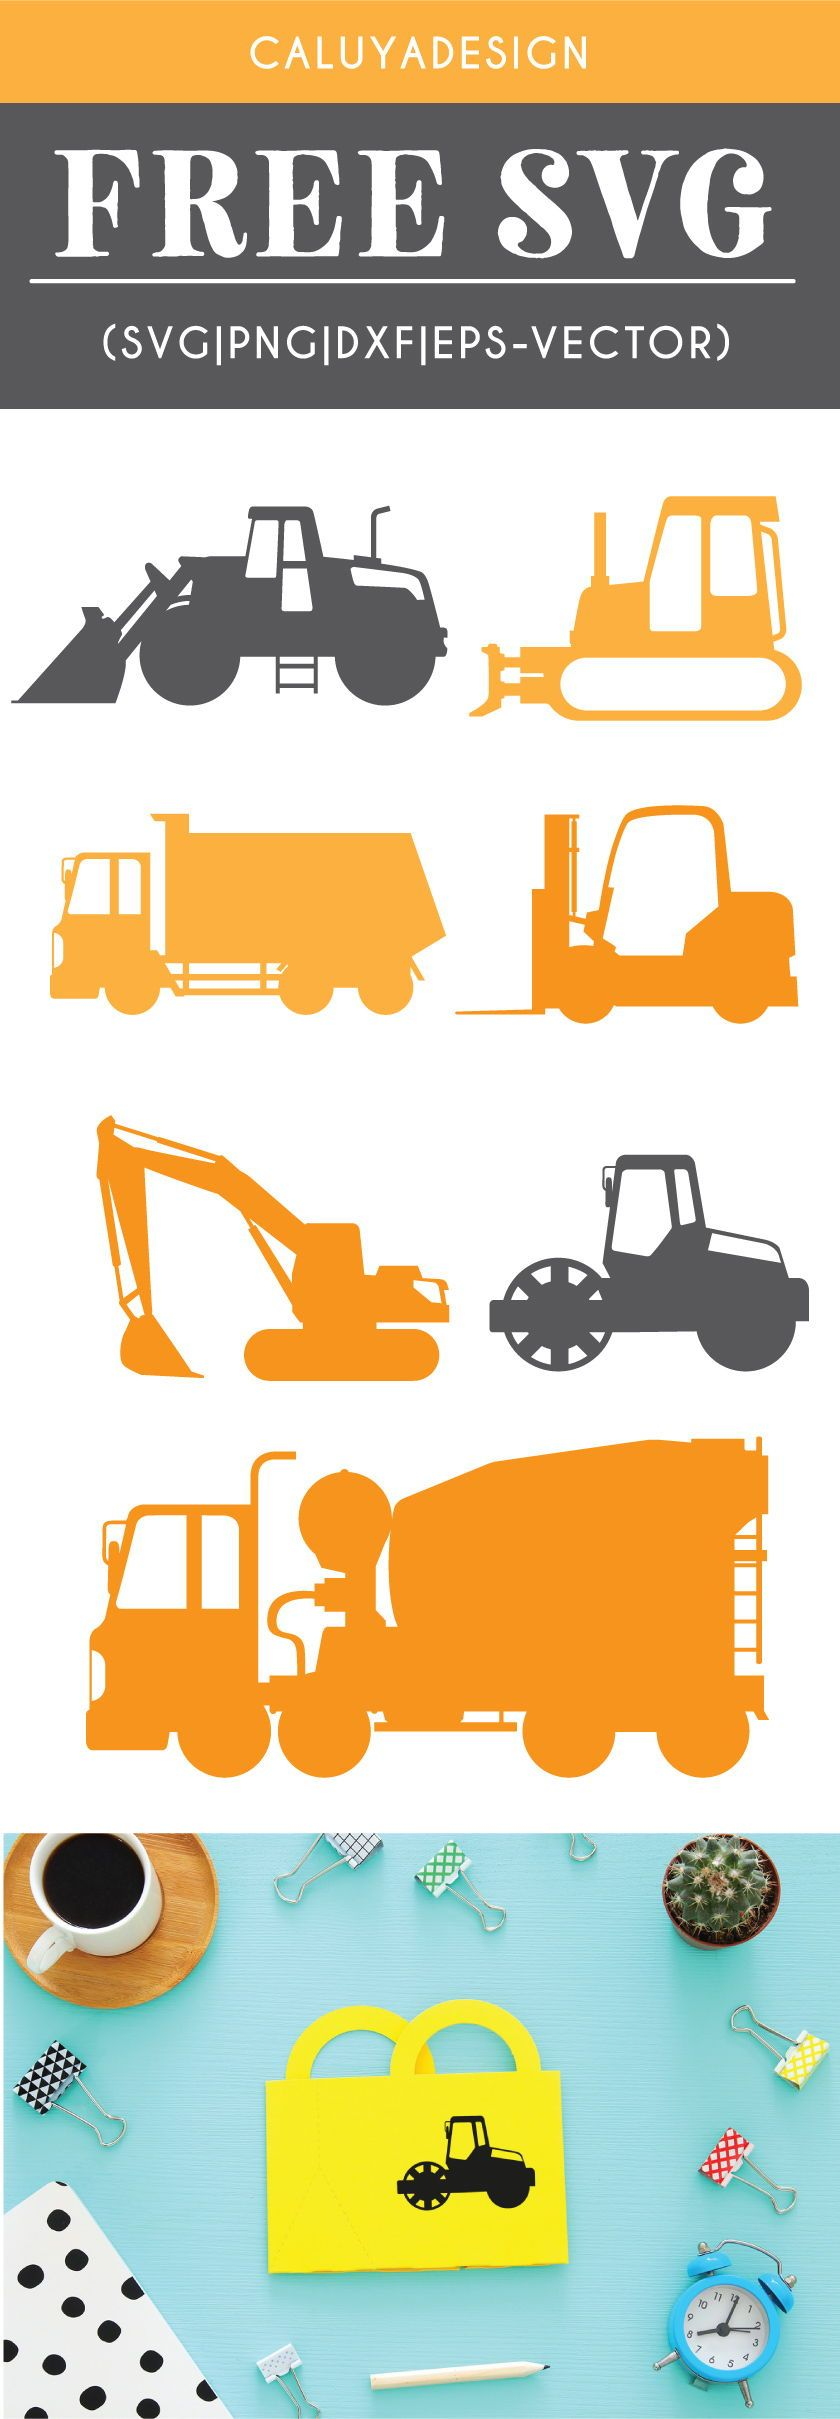 Photo of Free Construction Vehicles SVG, PNG, EPS & DXF by Caluya Design